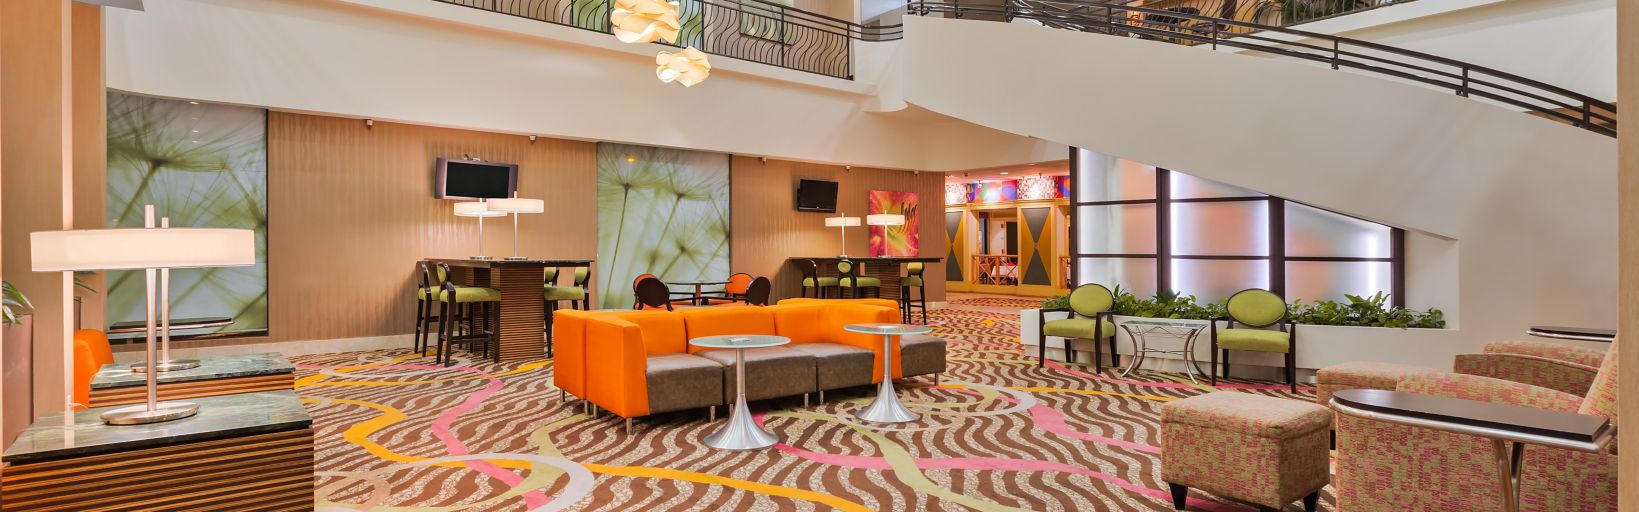 Holiday Inn San Jose - Silicon Valley Hotel by IHG